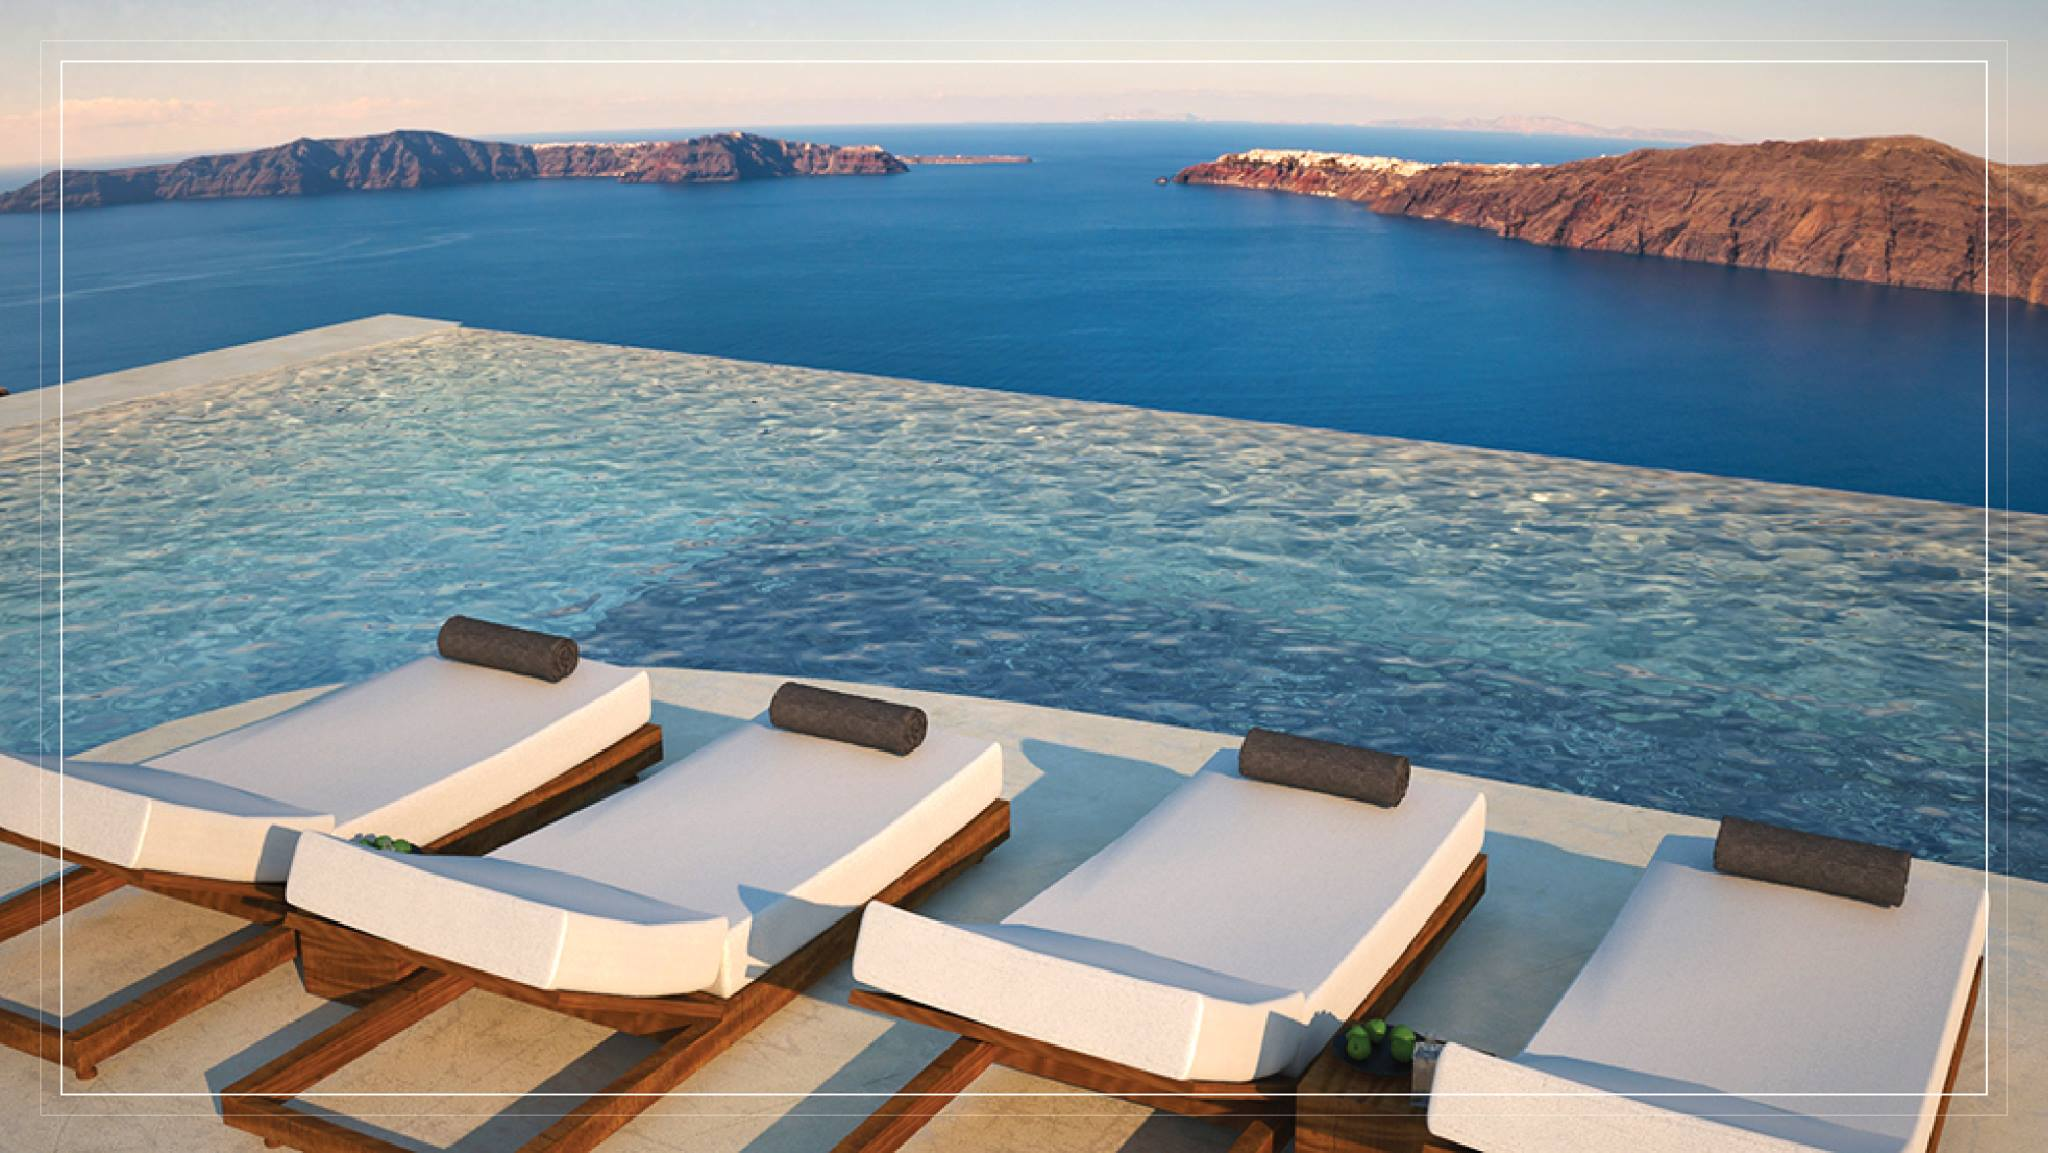 AndronisExclusive Santorini's new hotels